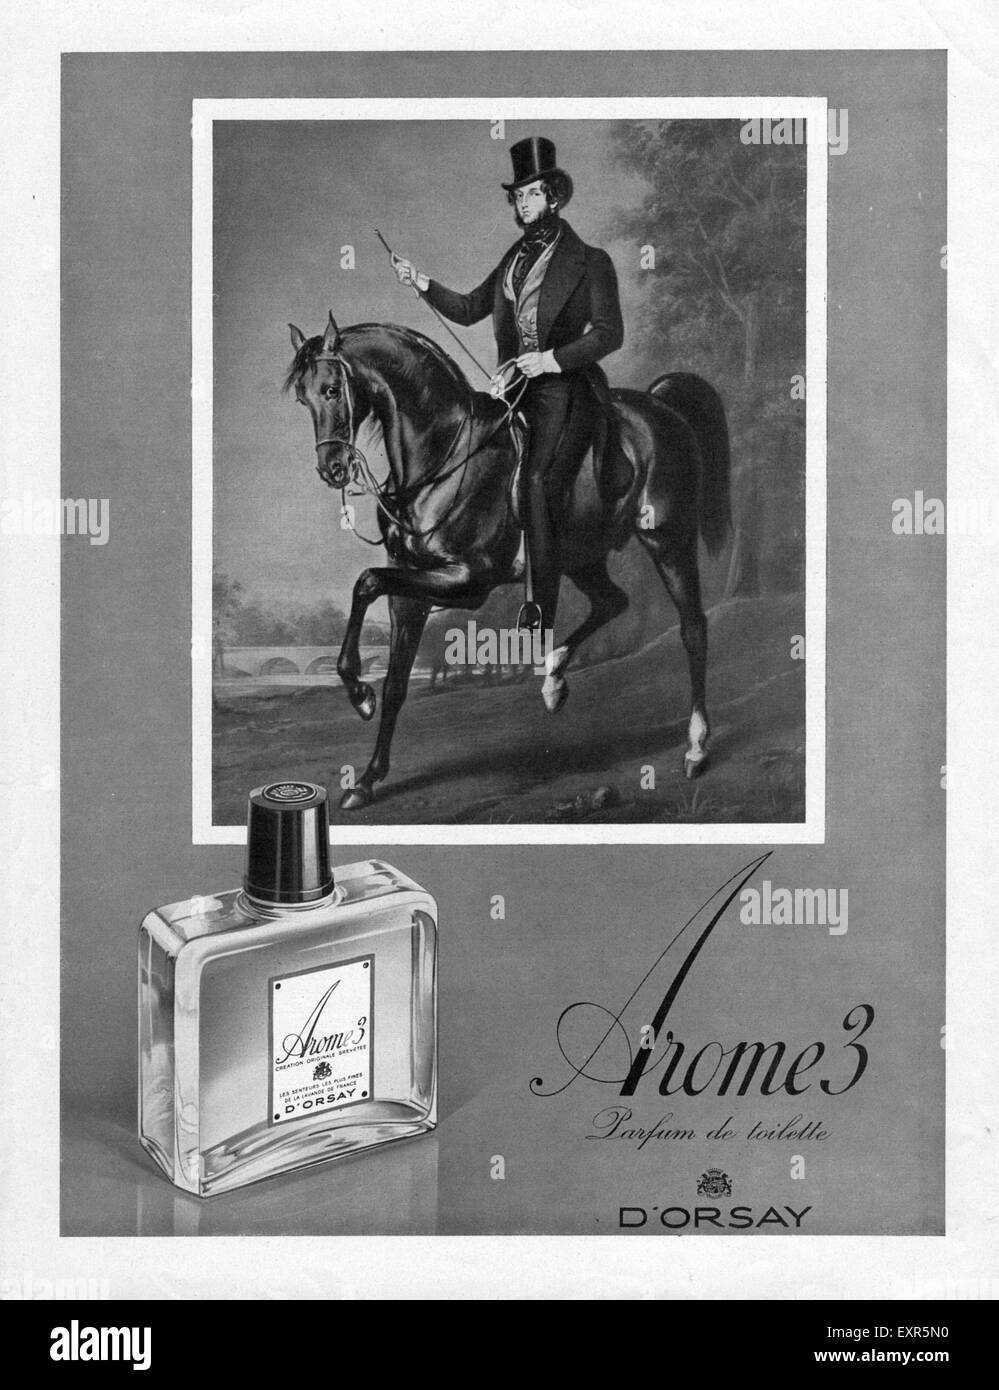 1930s France D'Orsay Magazine Advert - Stock Image